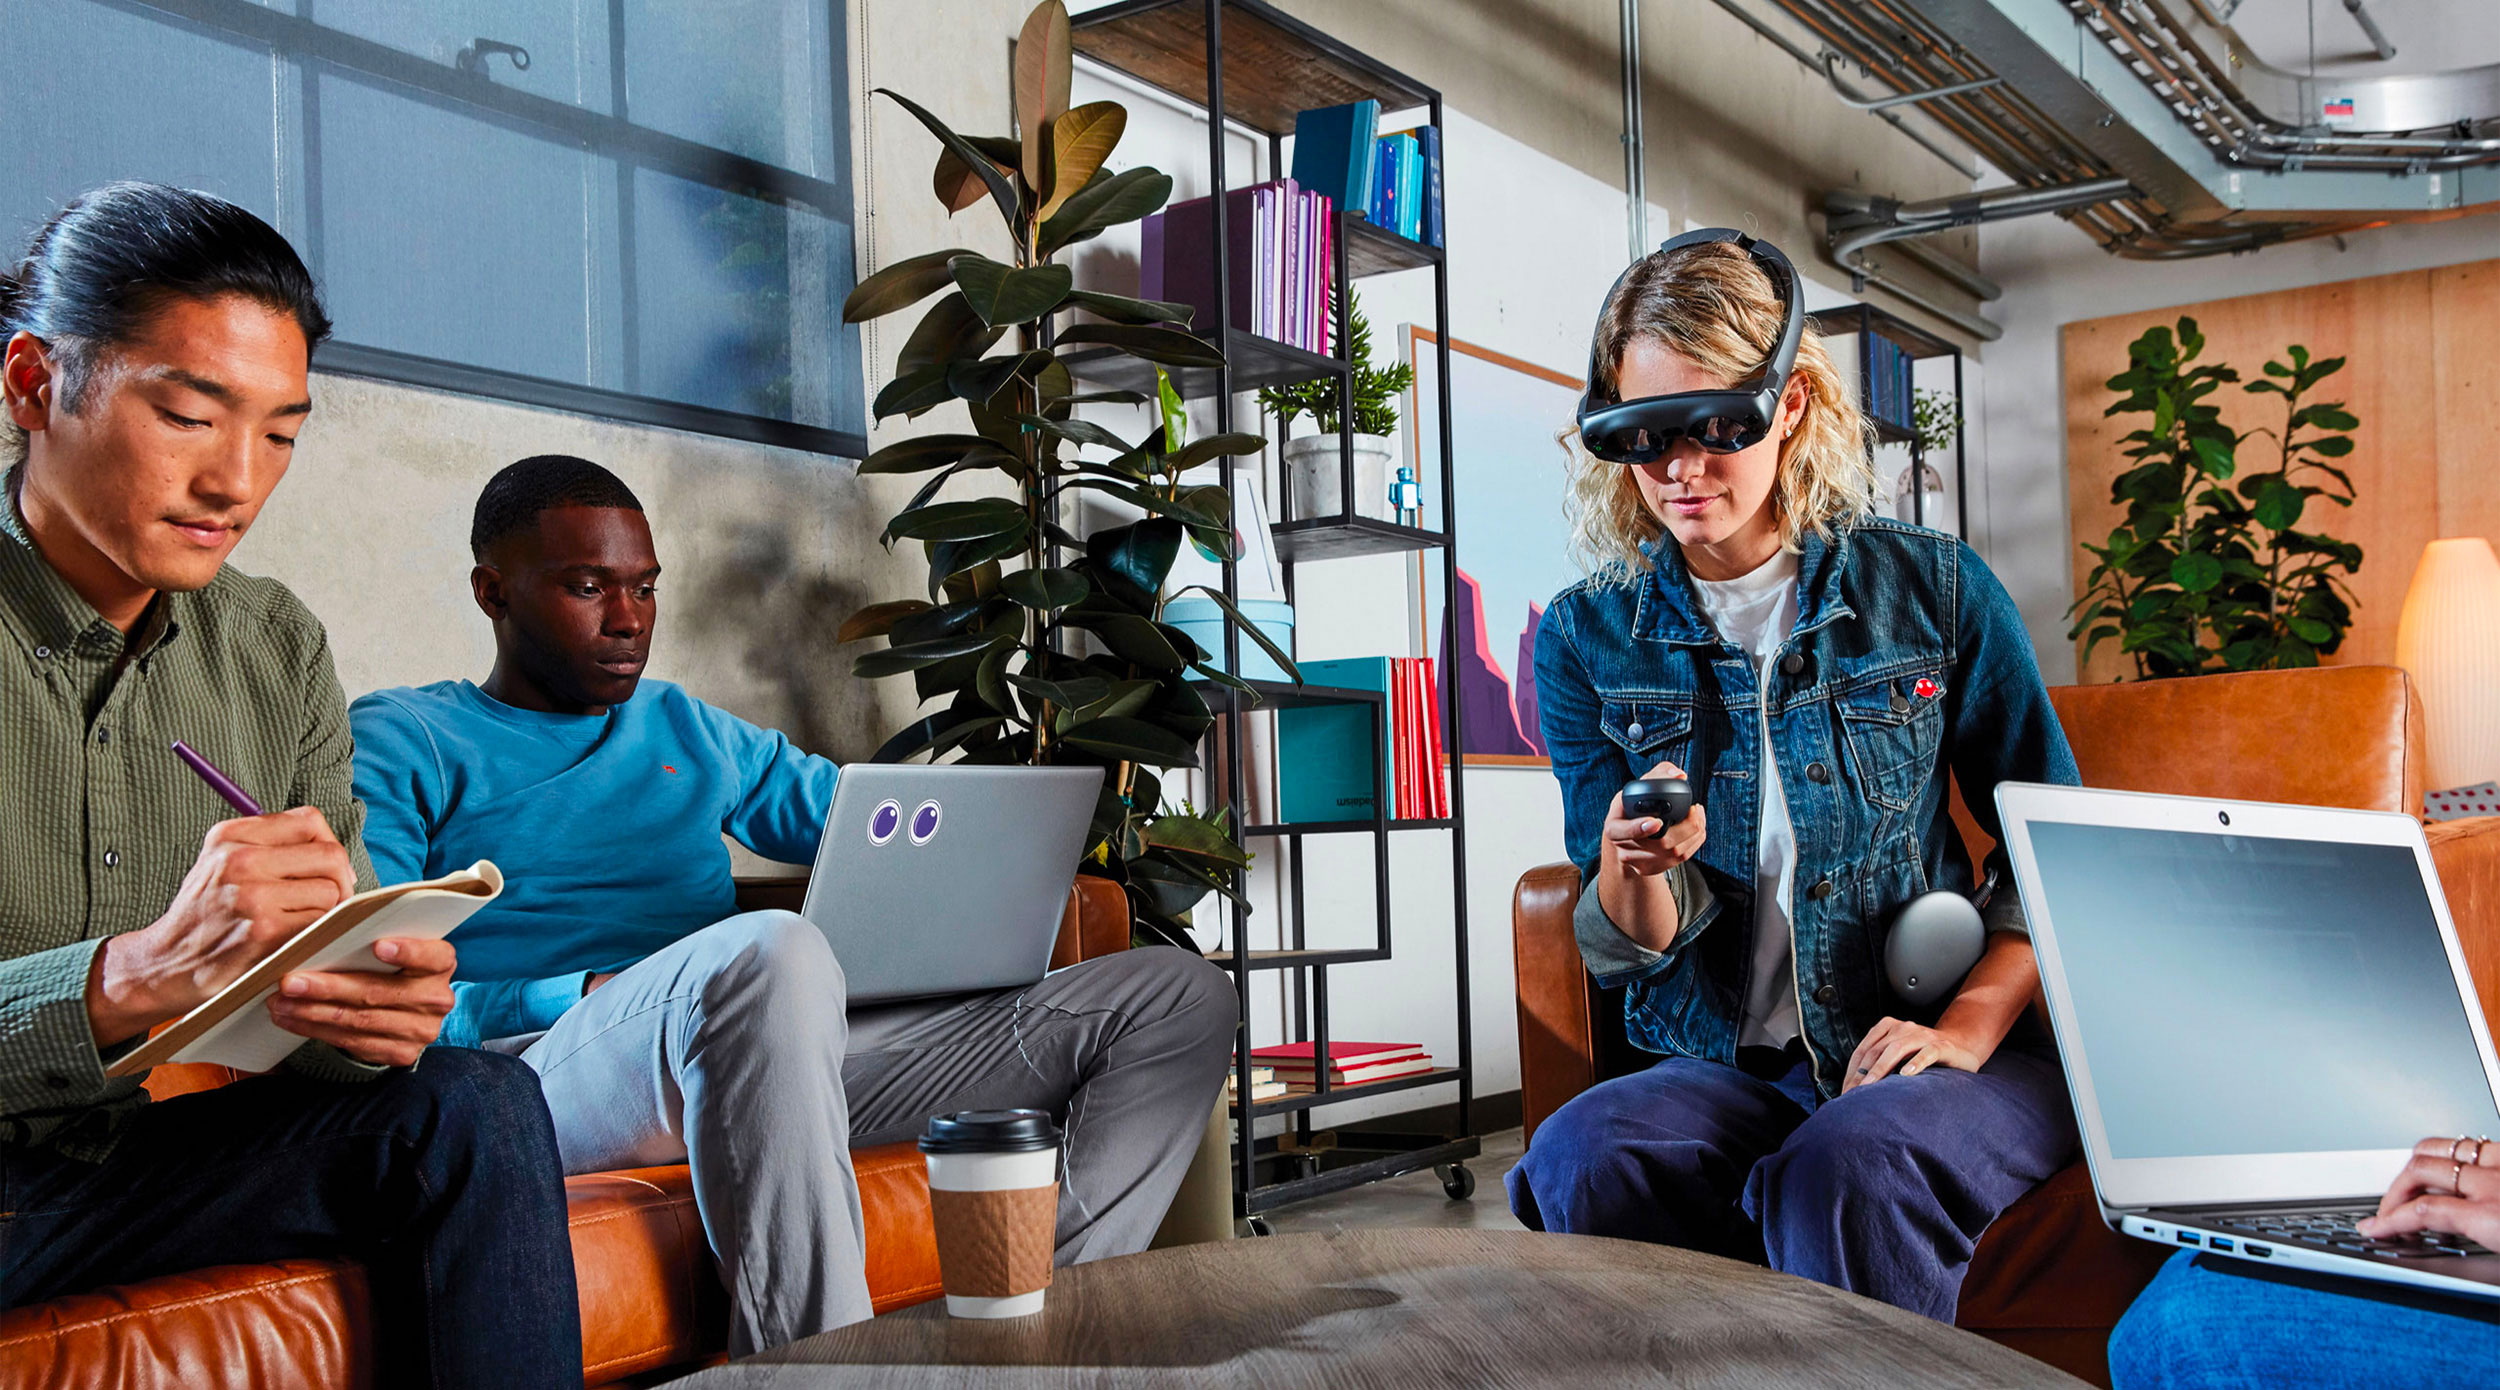 Blonde woman wearing the Magic Leap One headset sitting in an office with two male colleagues at work.